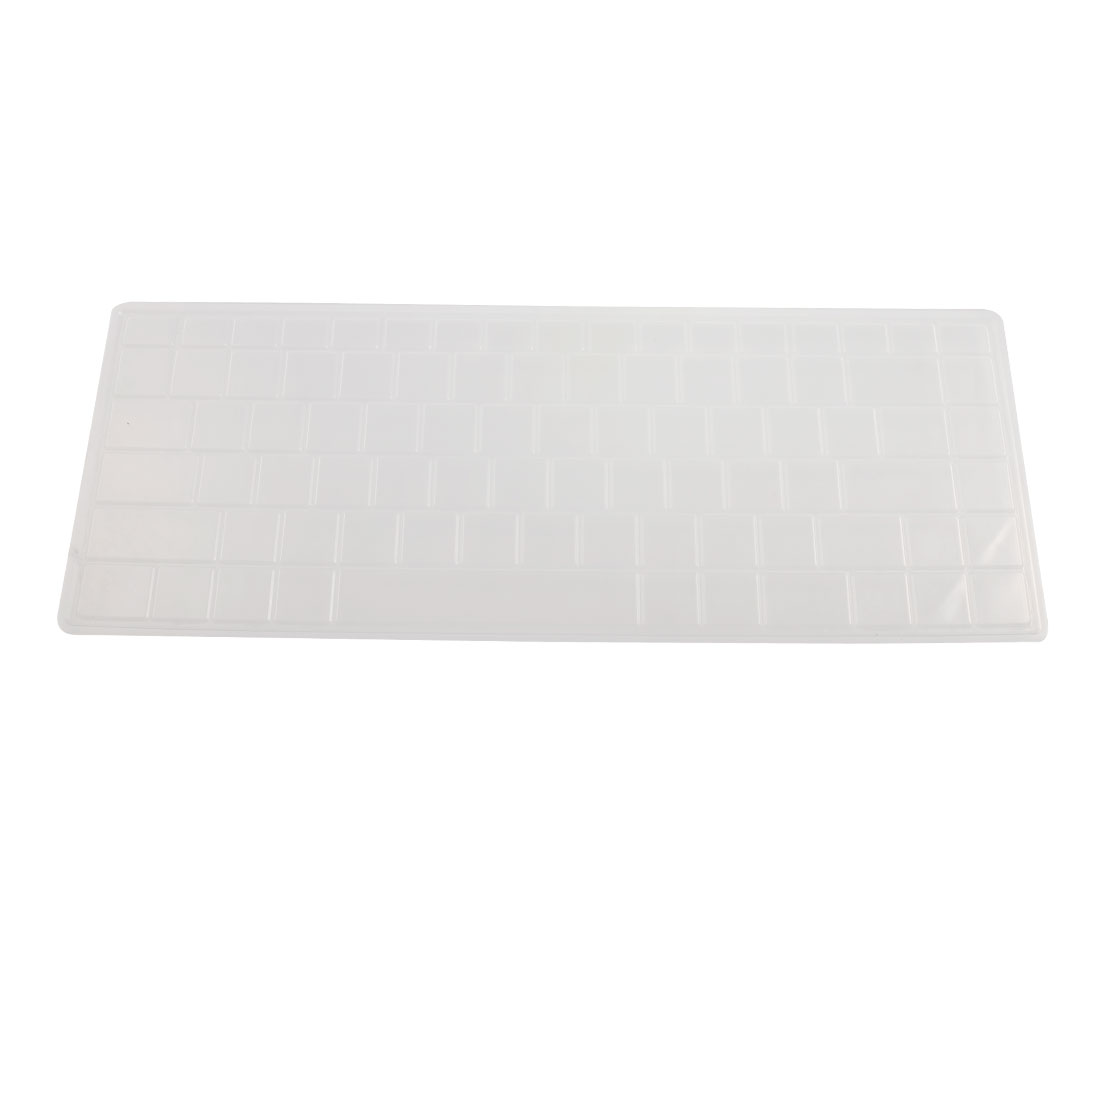 Clear White Silicone Keyboard Protective Cover Film for Asus K40 X8 P80